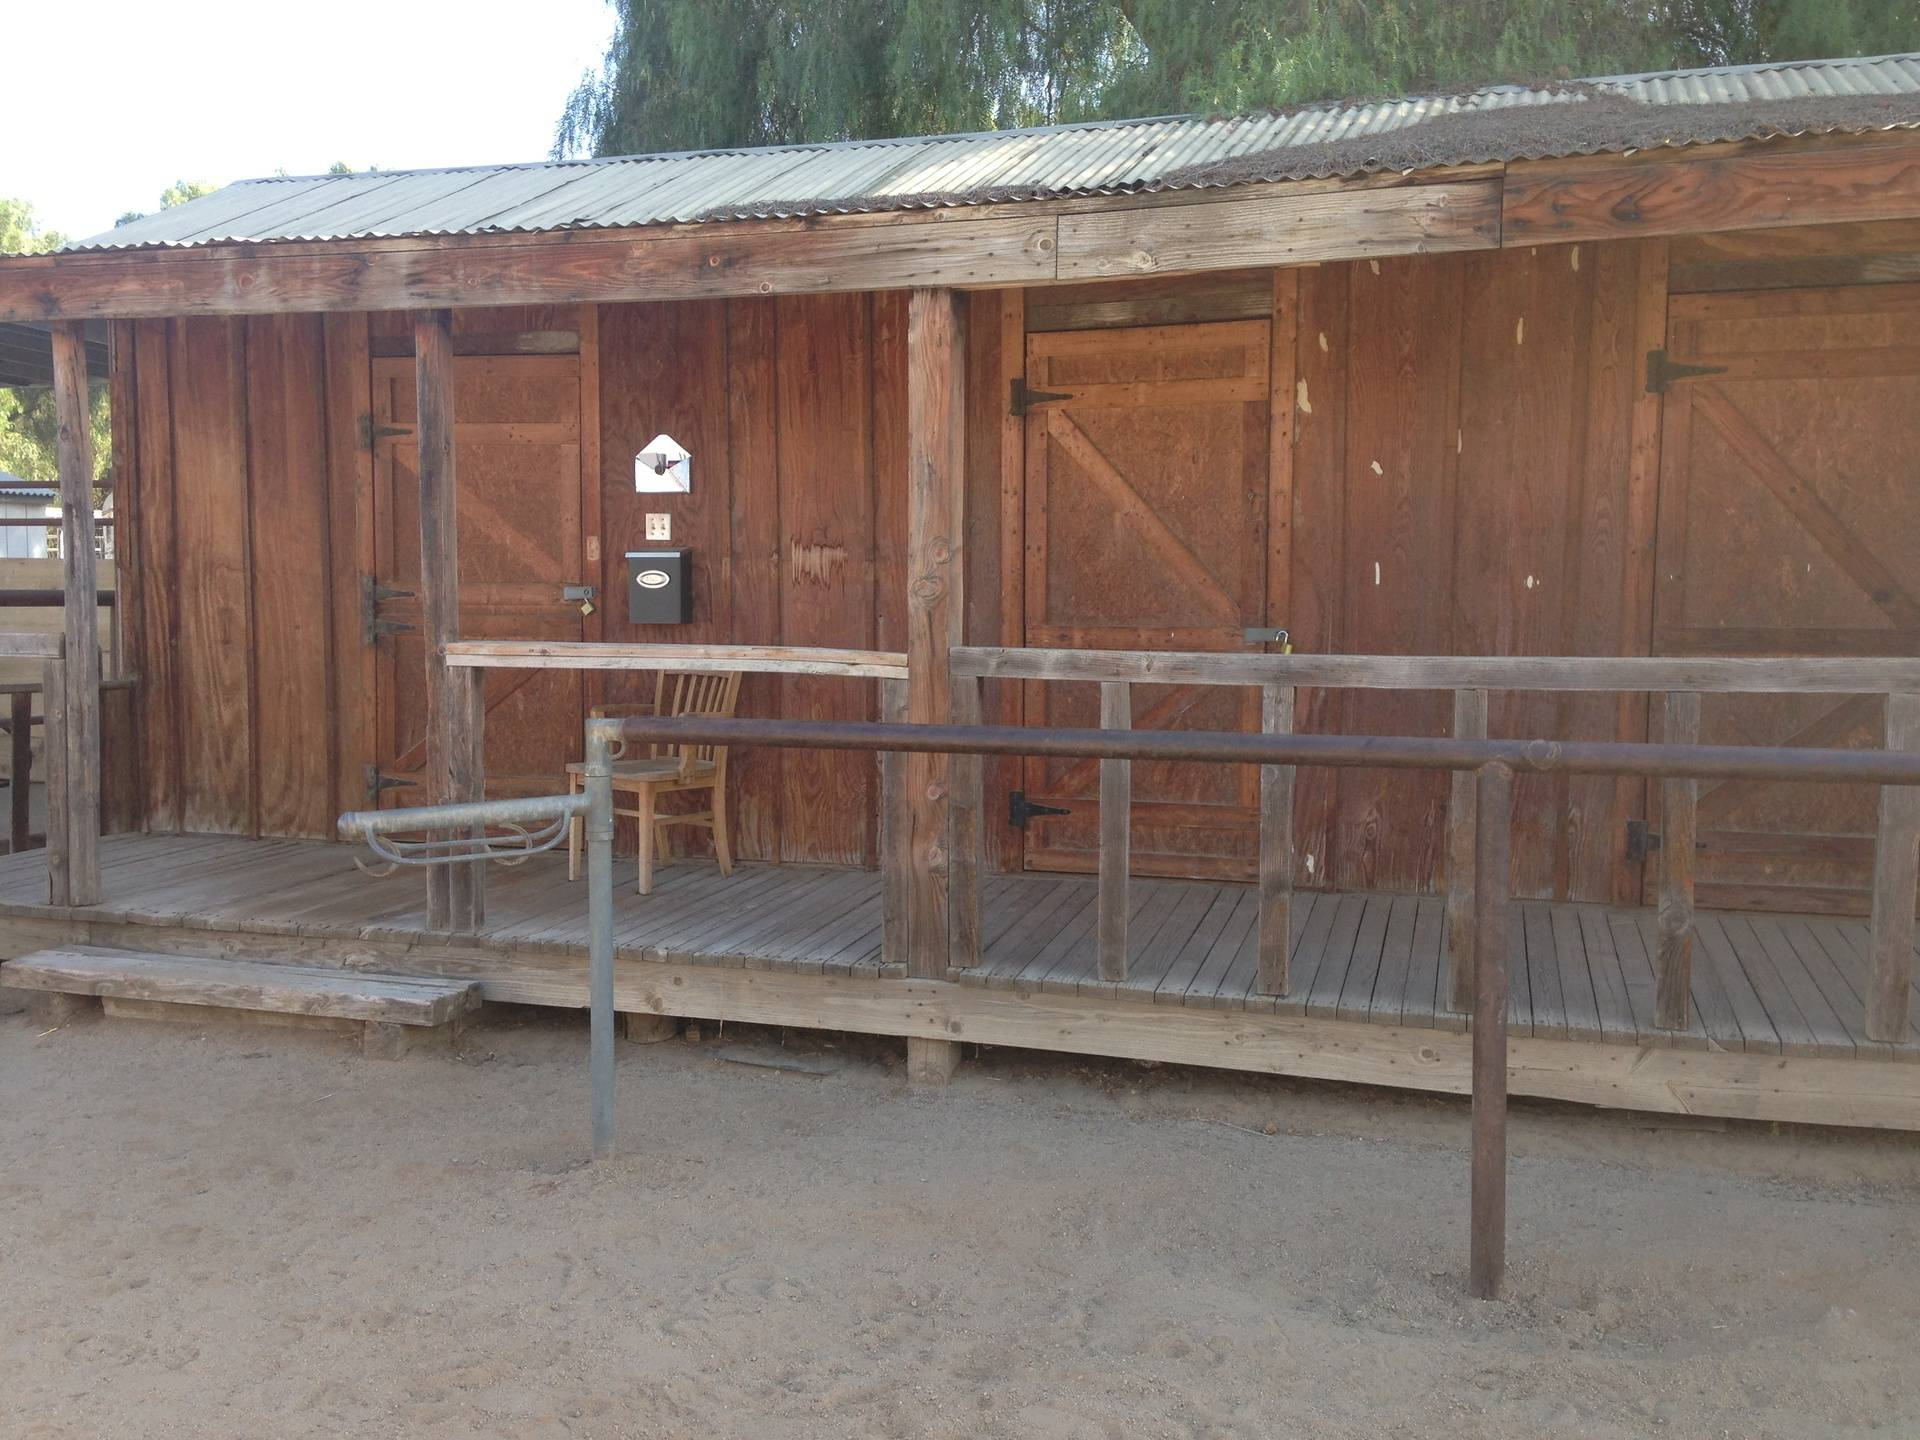 Office/tack rooms/tie rail